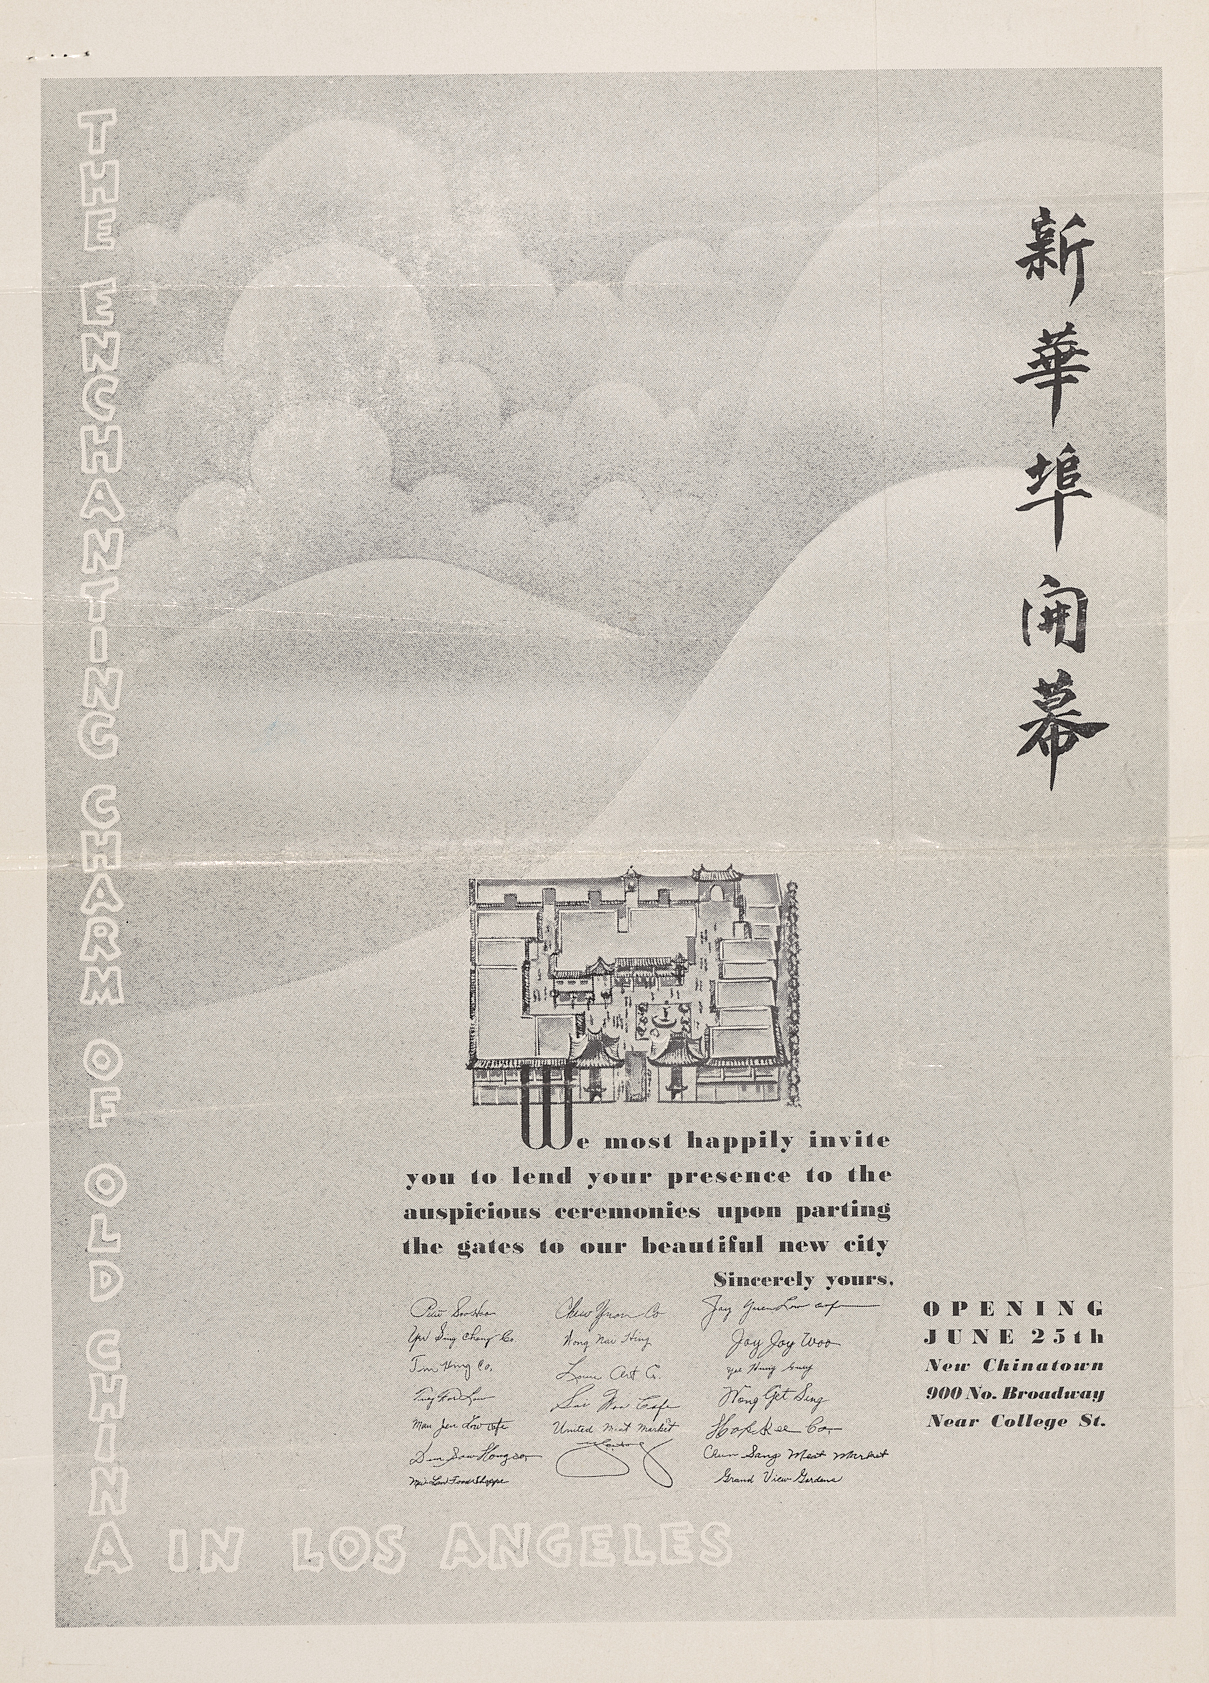 Printed invitation to the opening ceremony of New Chinatown (1938)